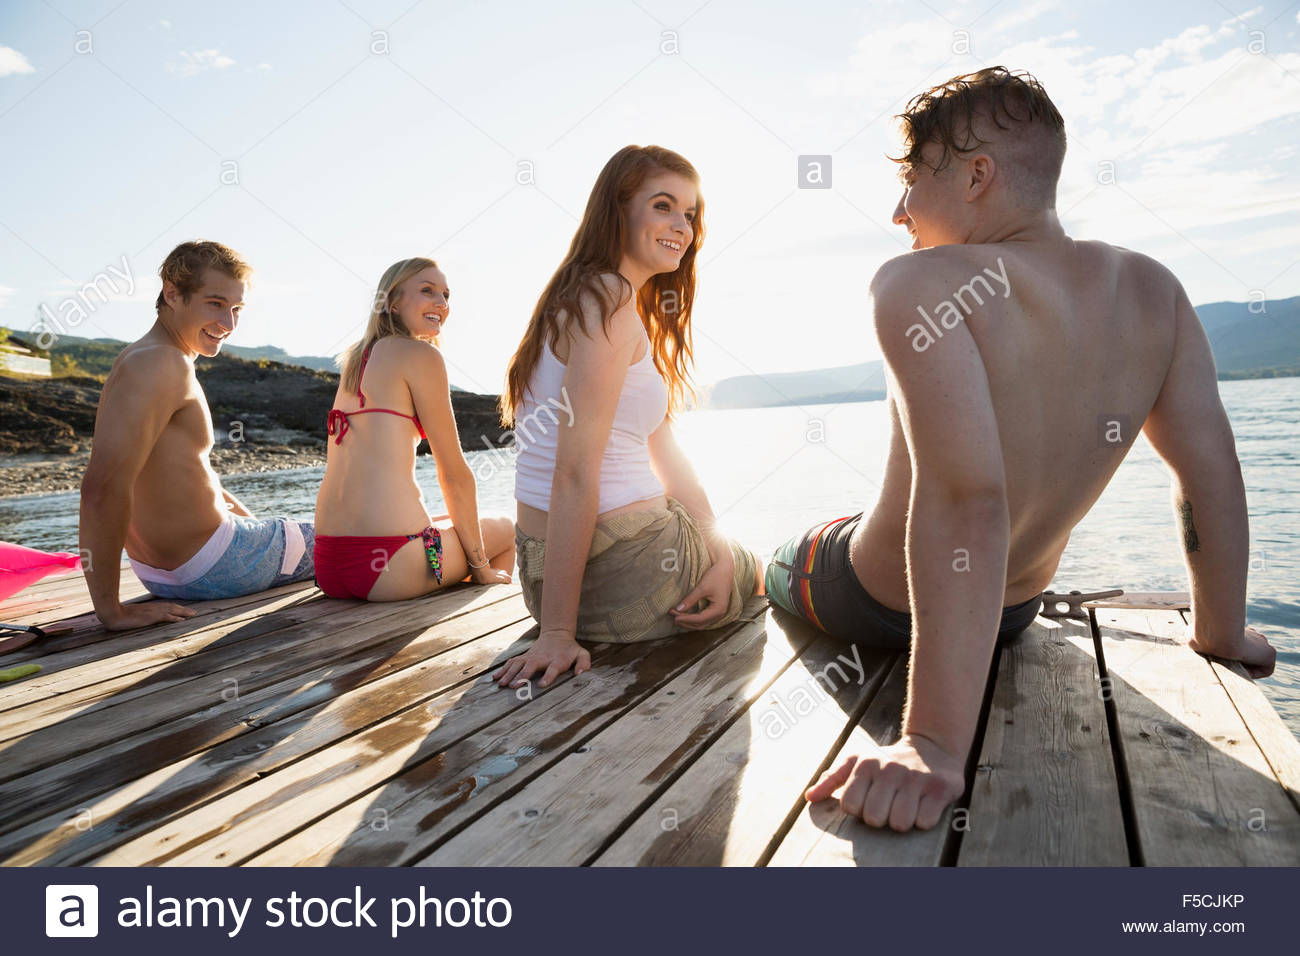 Young friends hanging out on sunny lake dock - Stock Image